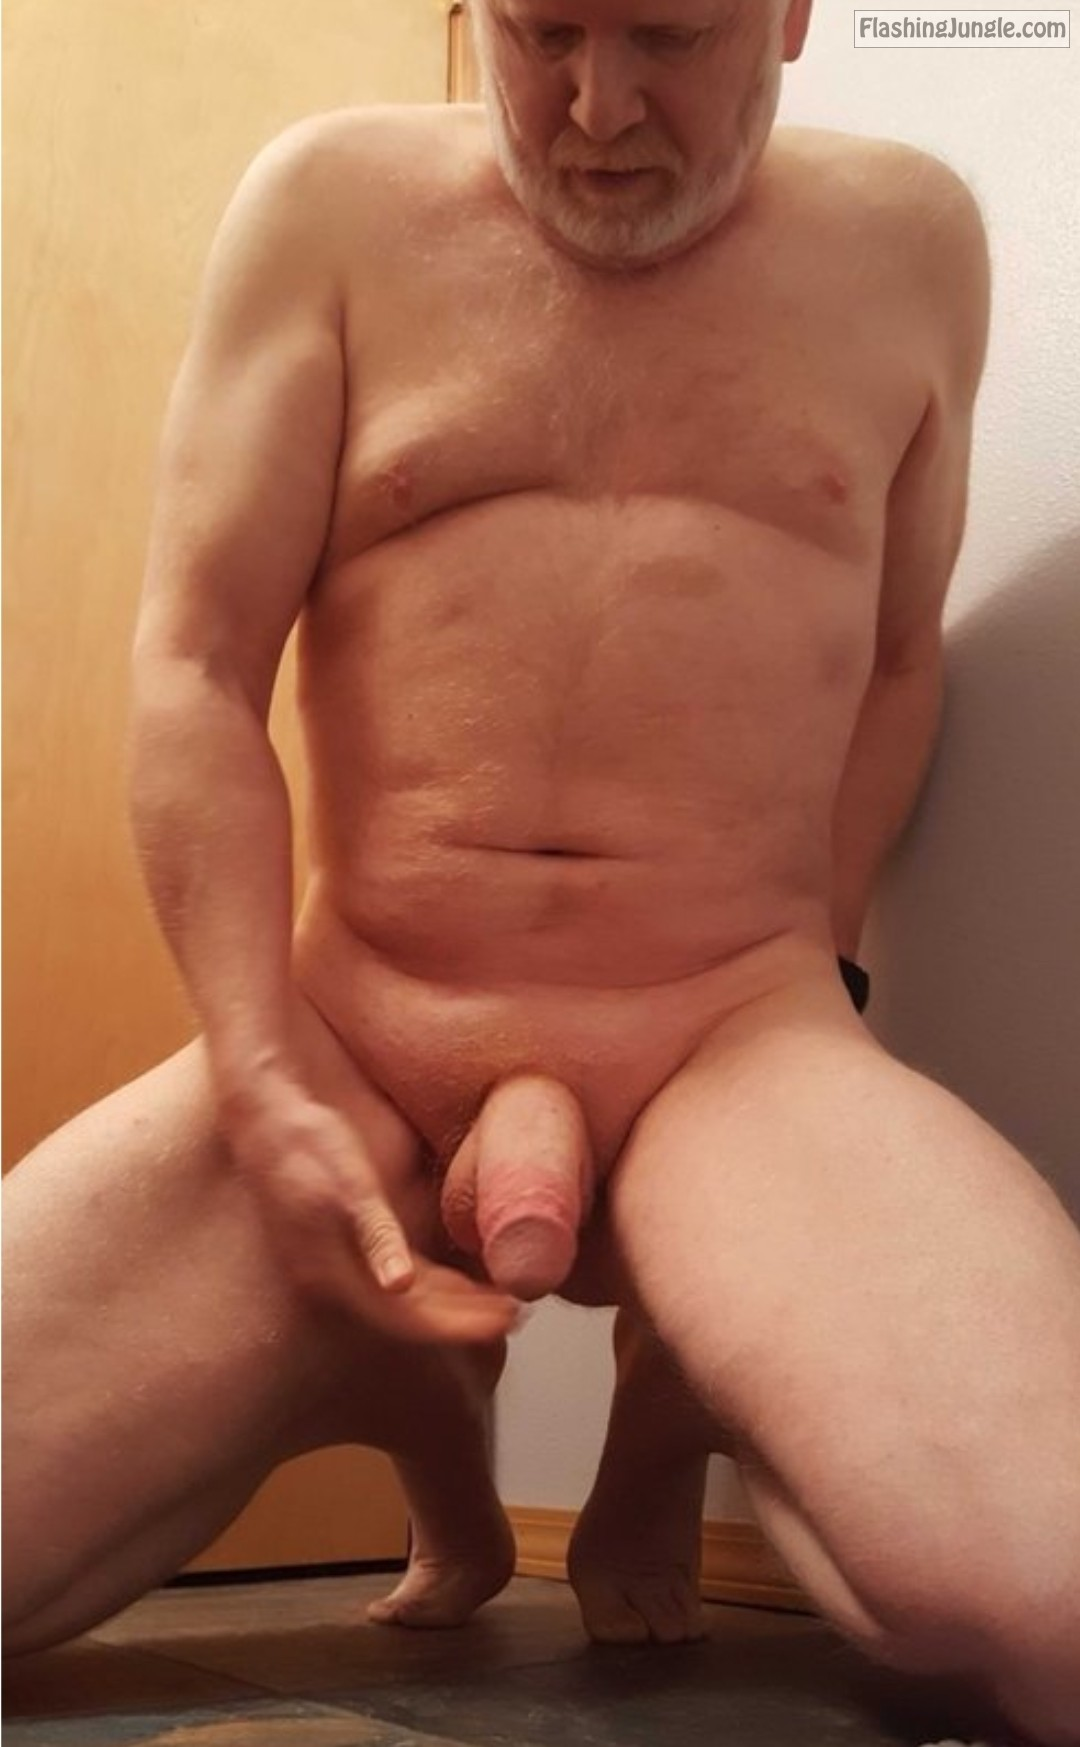 Old Man Thick Dick itwasfungay real nudity dick flash